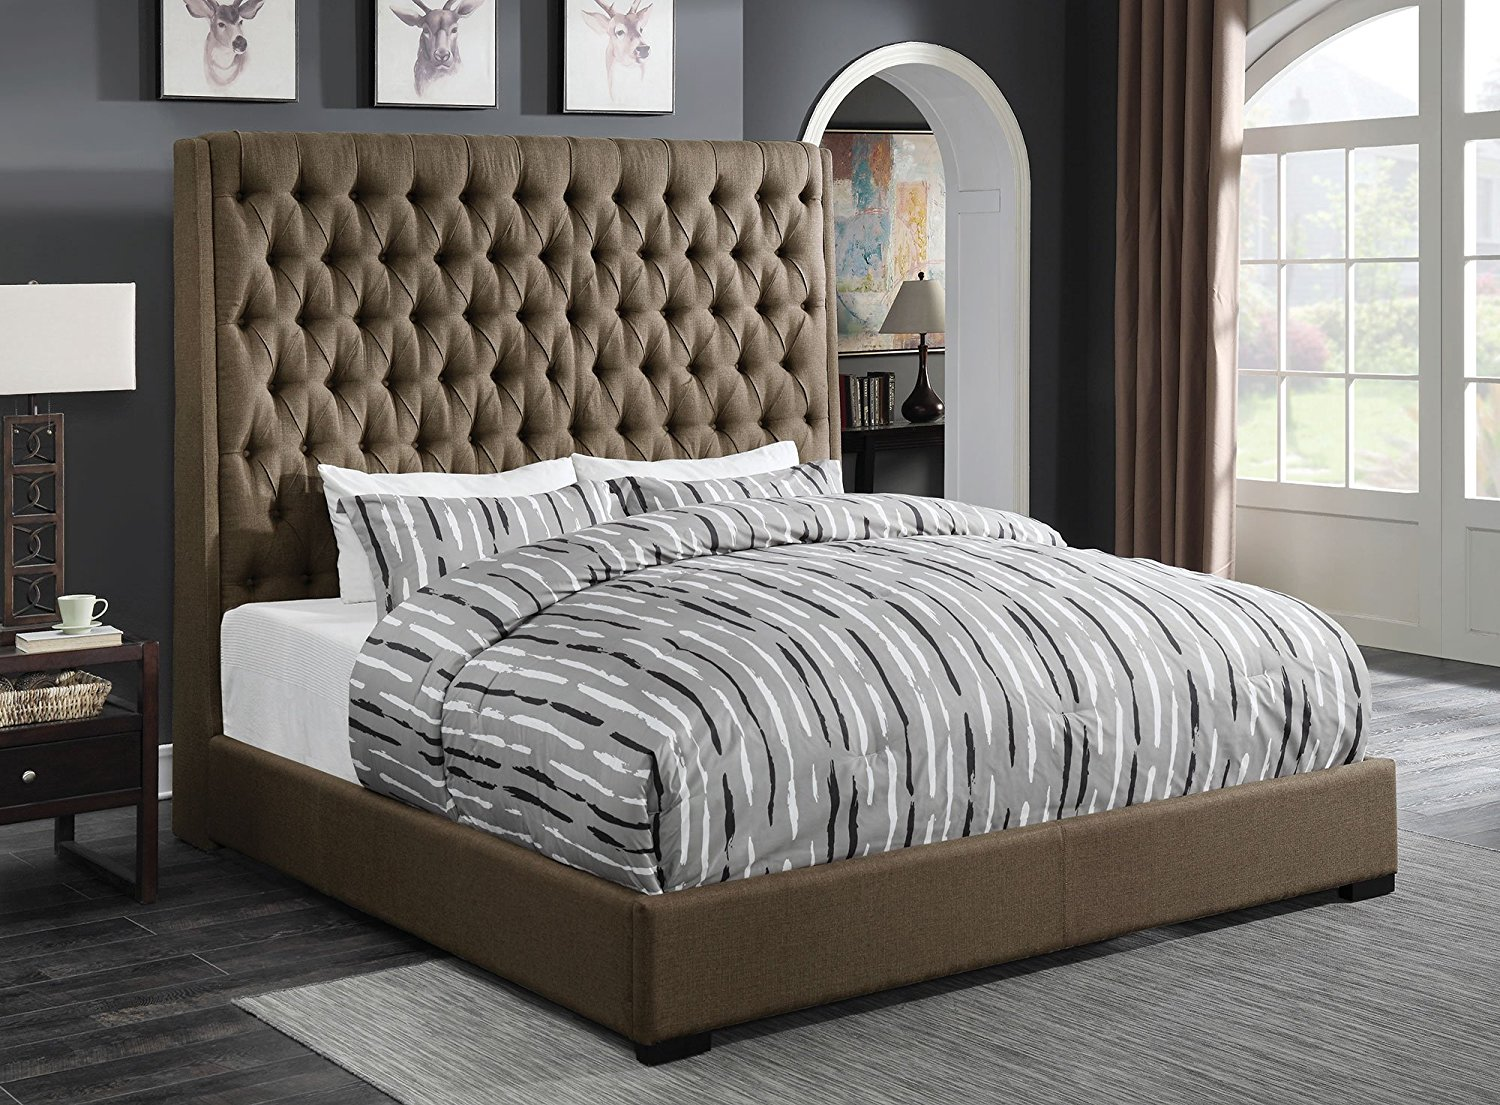 Coaster Camille Upholstered Beds Queen Upholstered Bed in Brown Fabric